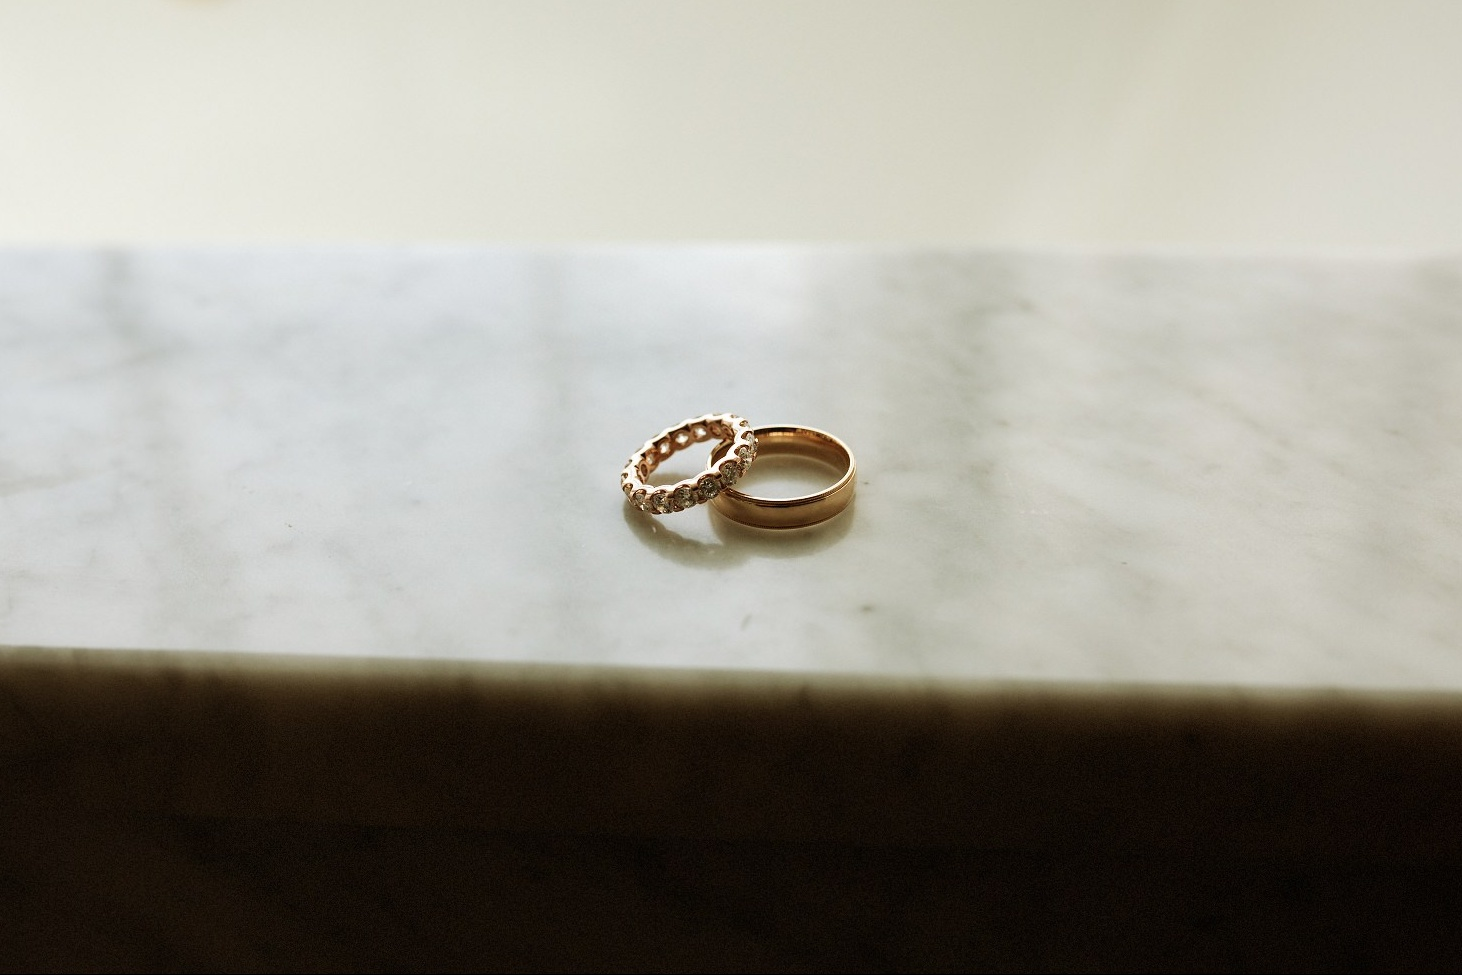 Ludlow Hotel Wedding - Wedding Rings on a marble surface